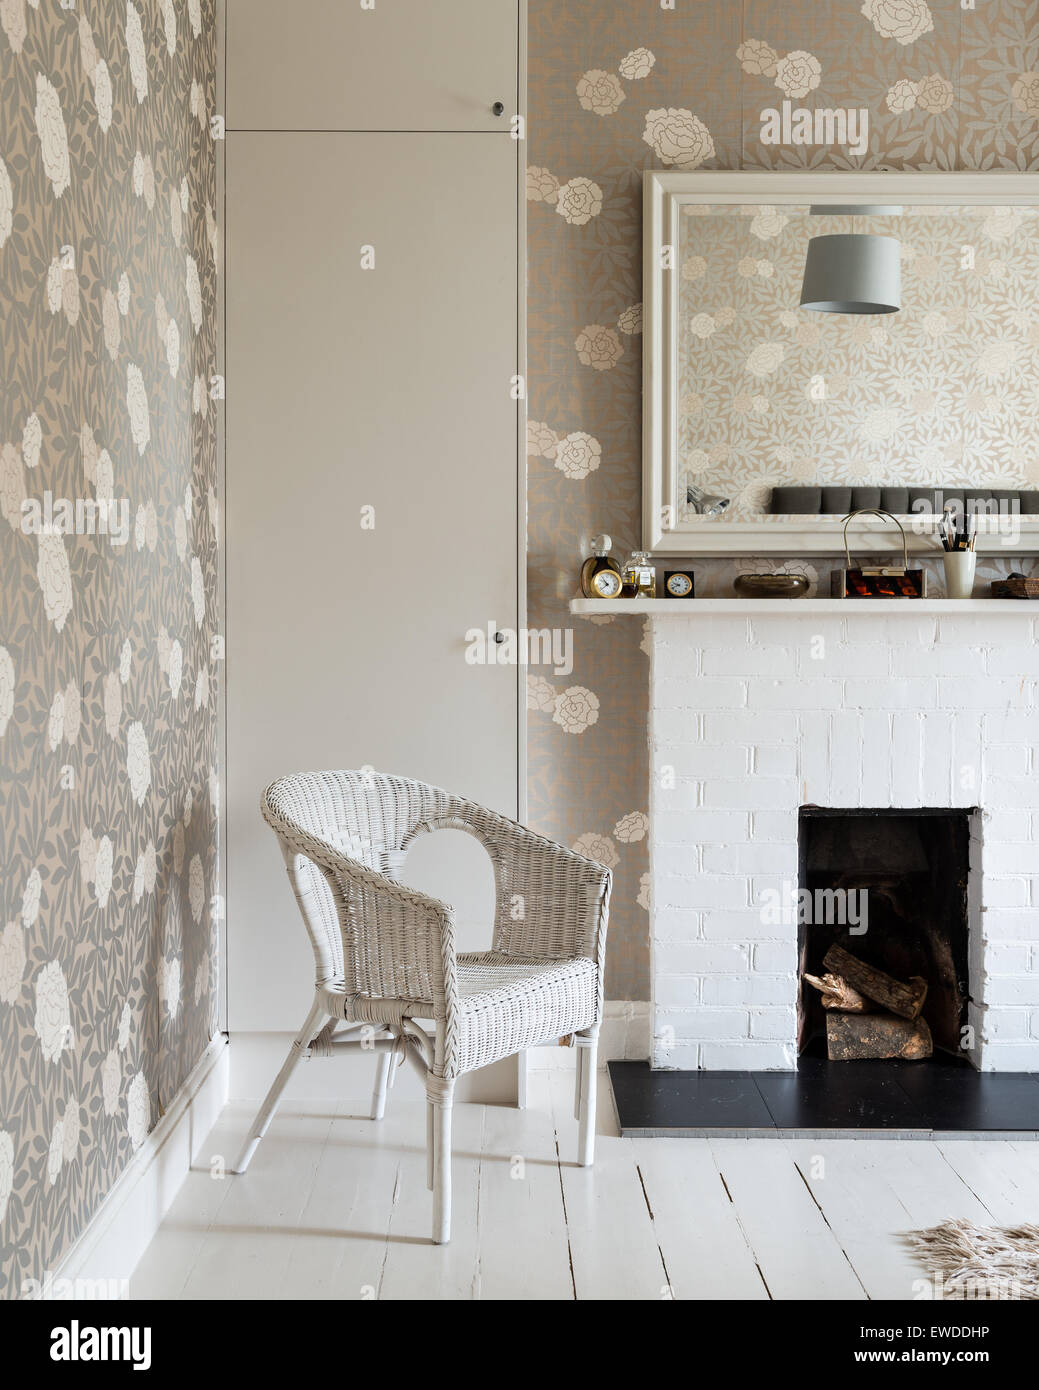 White Cane Chair In Bedroom With Metallic Floral Print Wallpaper By  Osbourne U0026 Little And Brick Fireplace